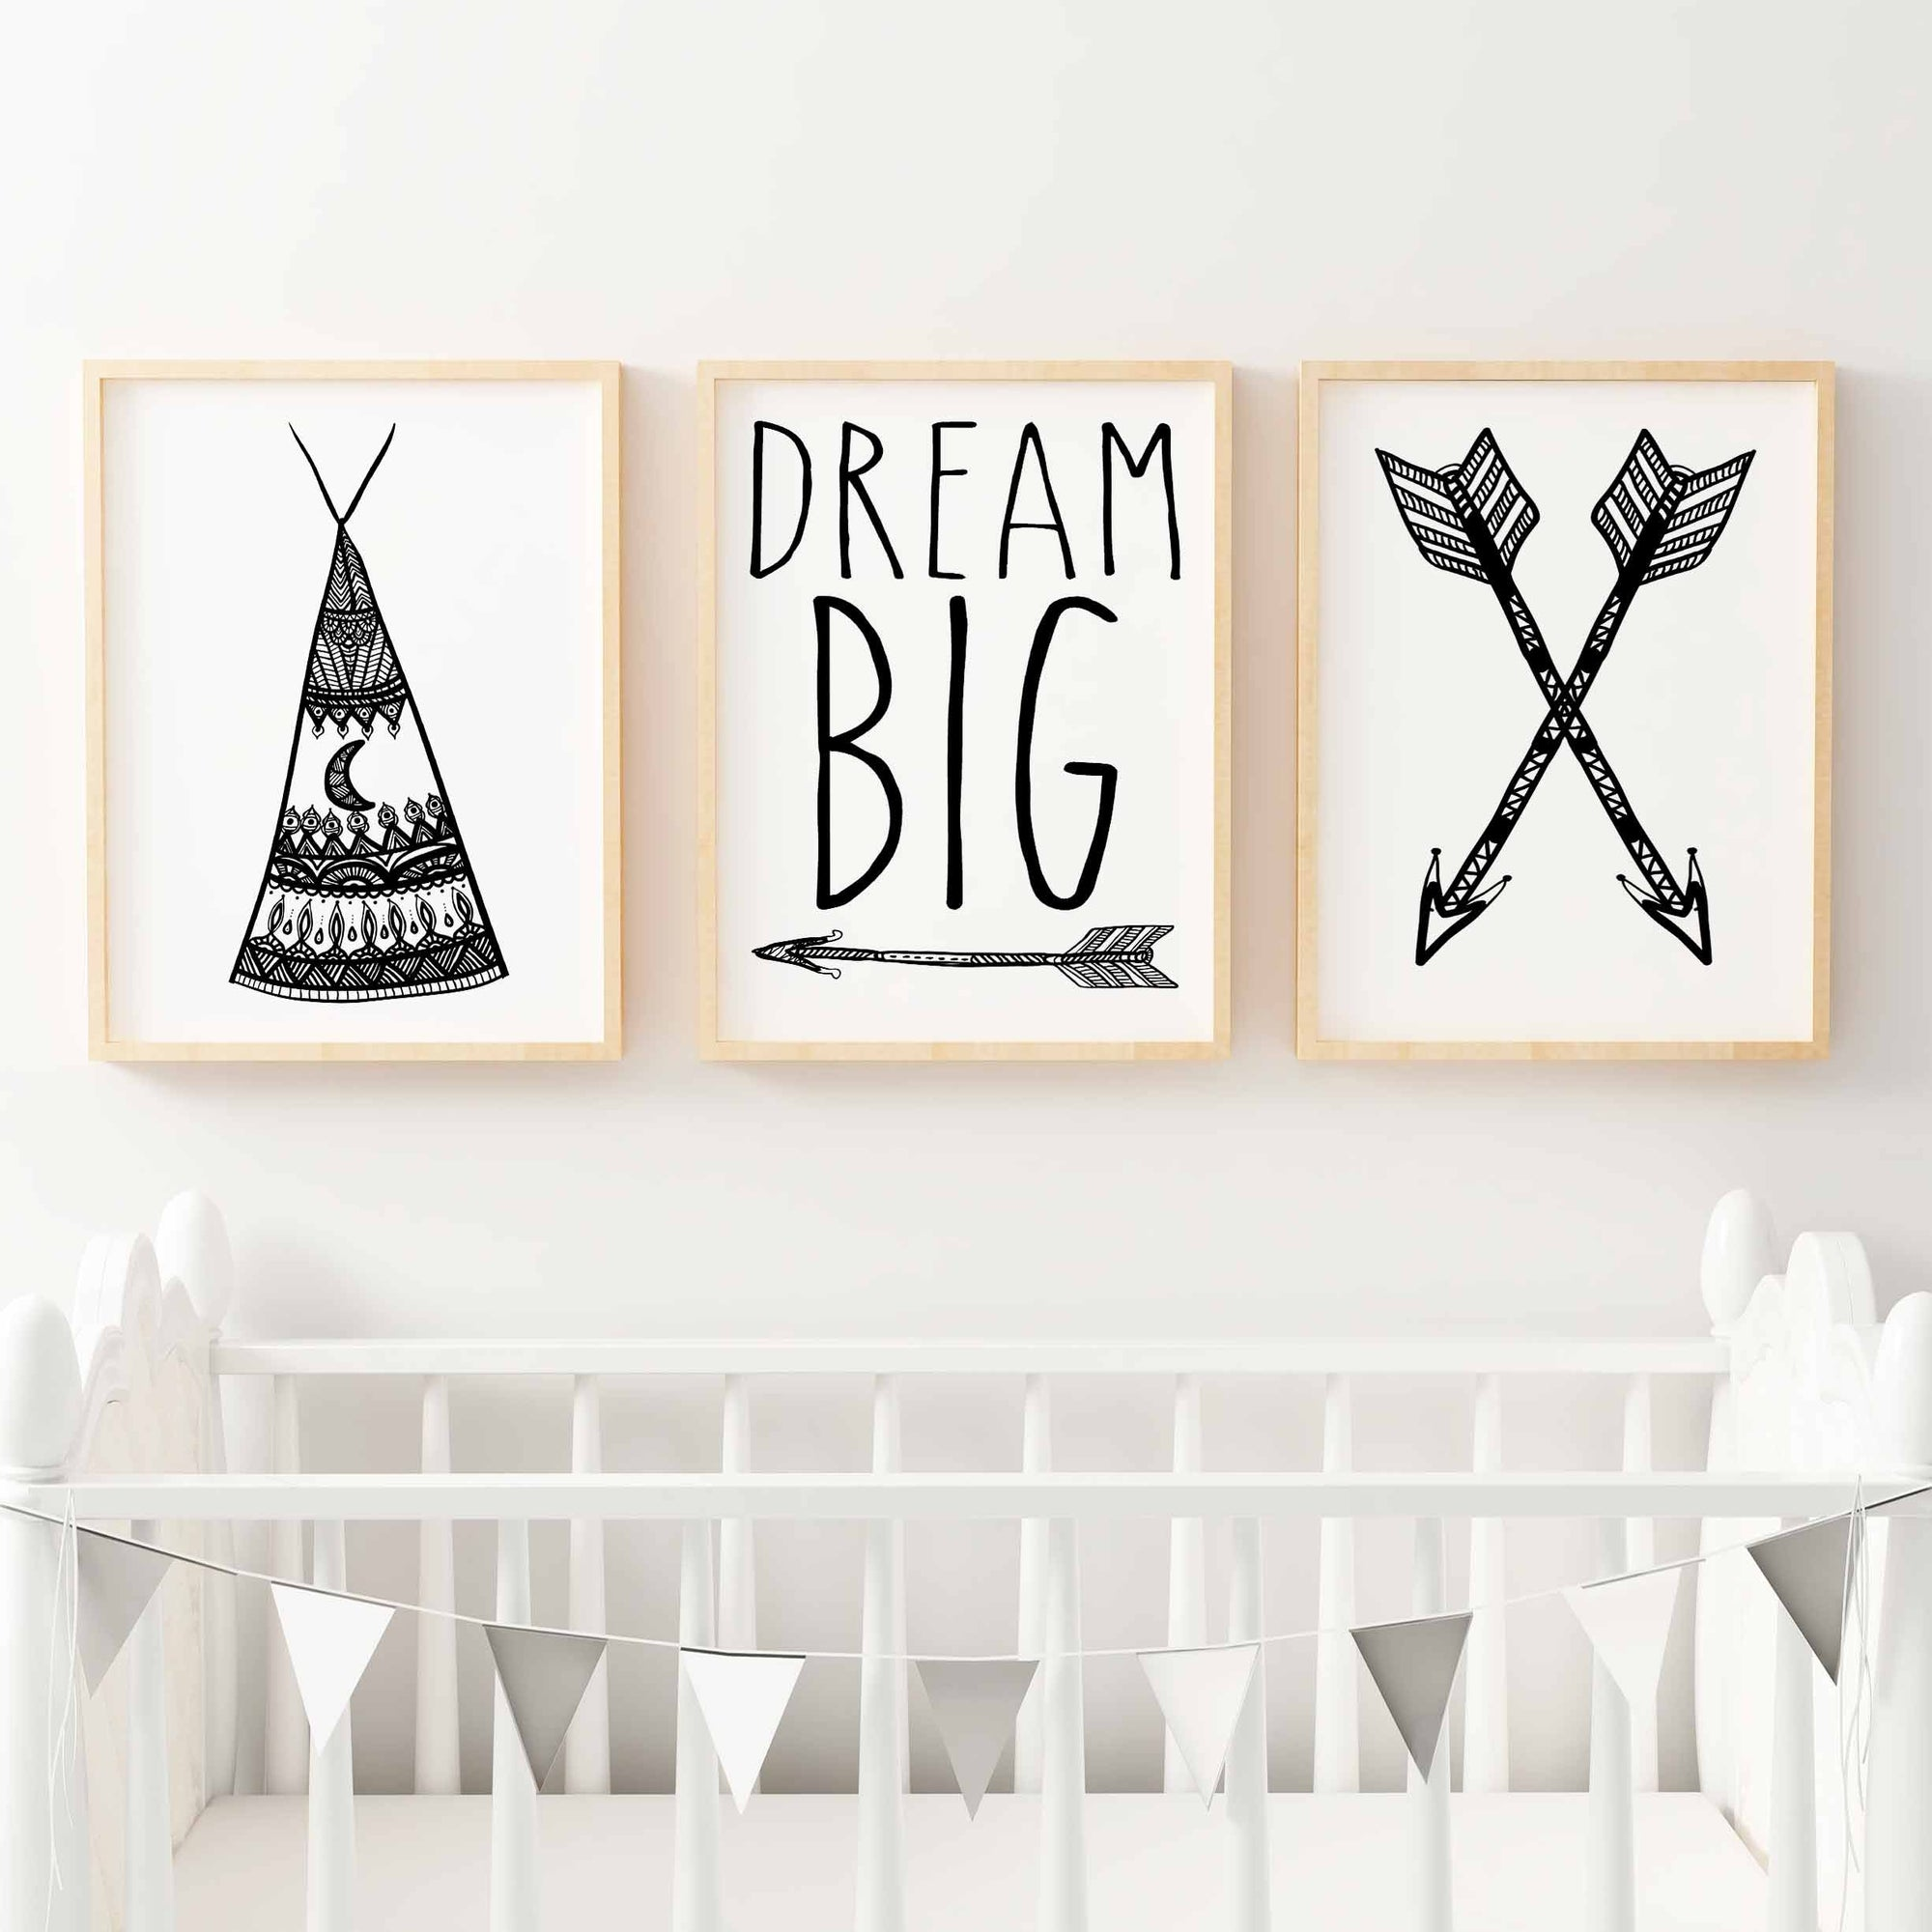 Boho Tribal Print Set - Arrows, Teepee & Dream Big Nursery or Bedroom Wall Art